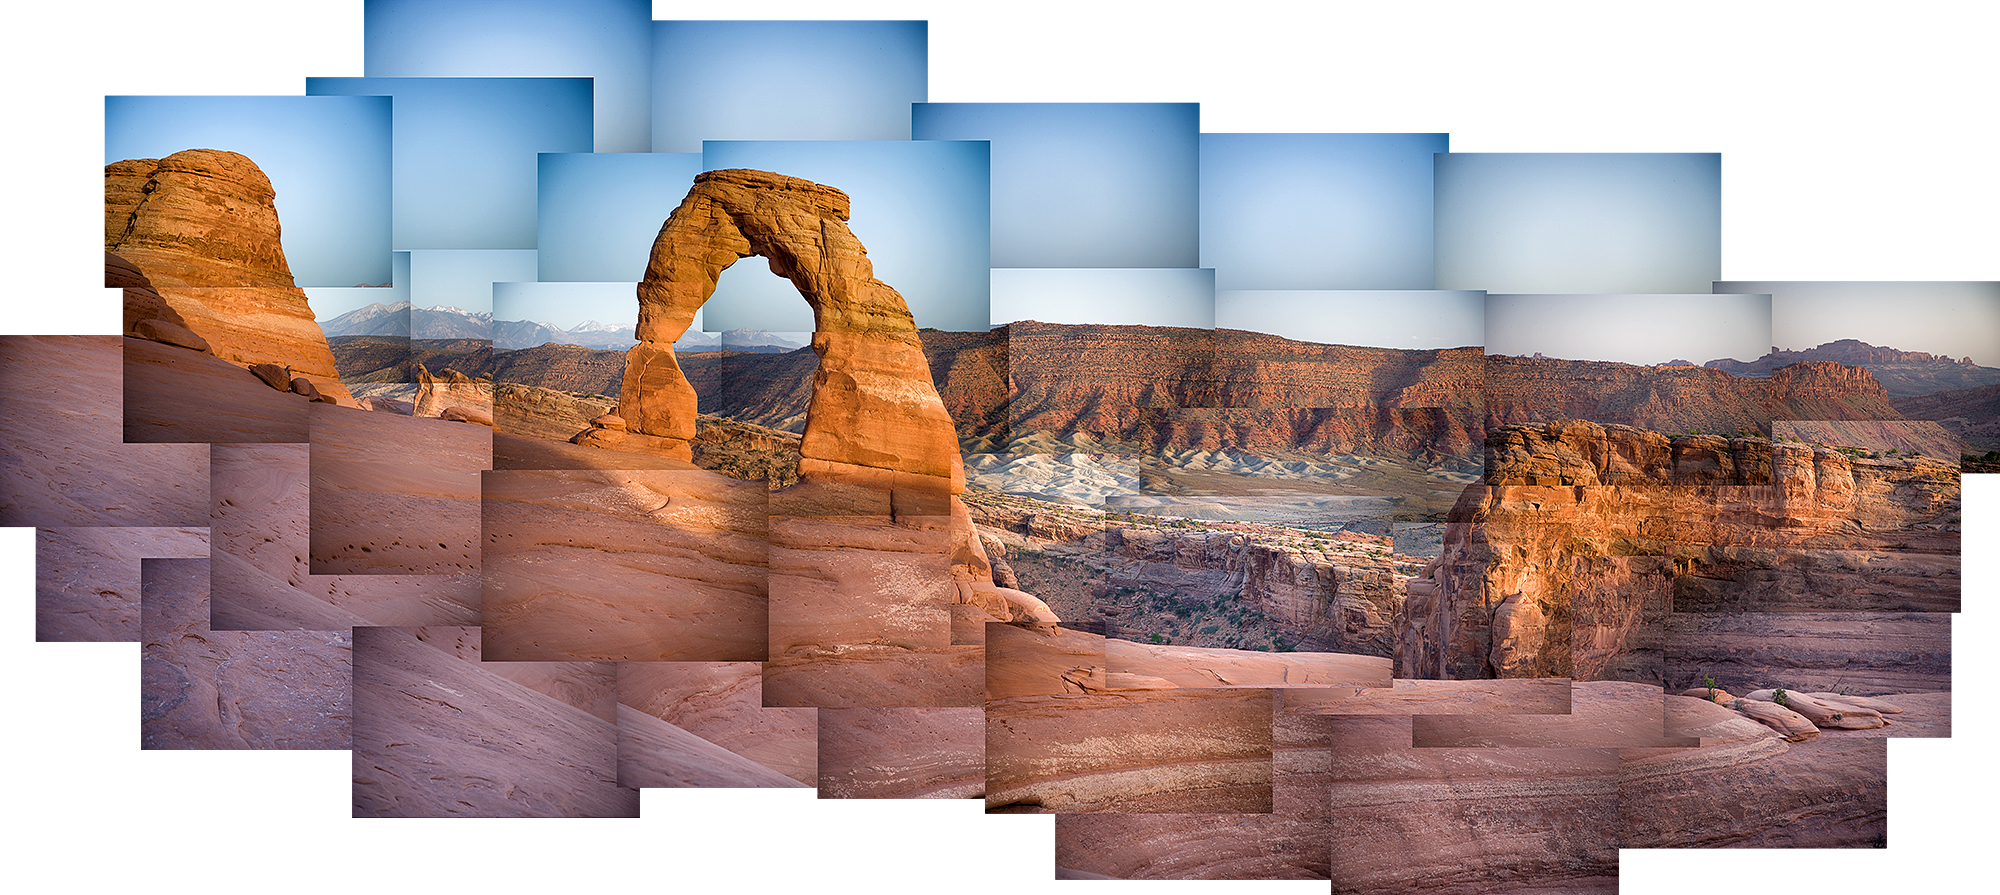 the Delicate Arch copy.jpg